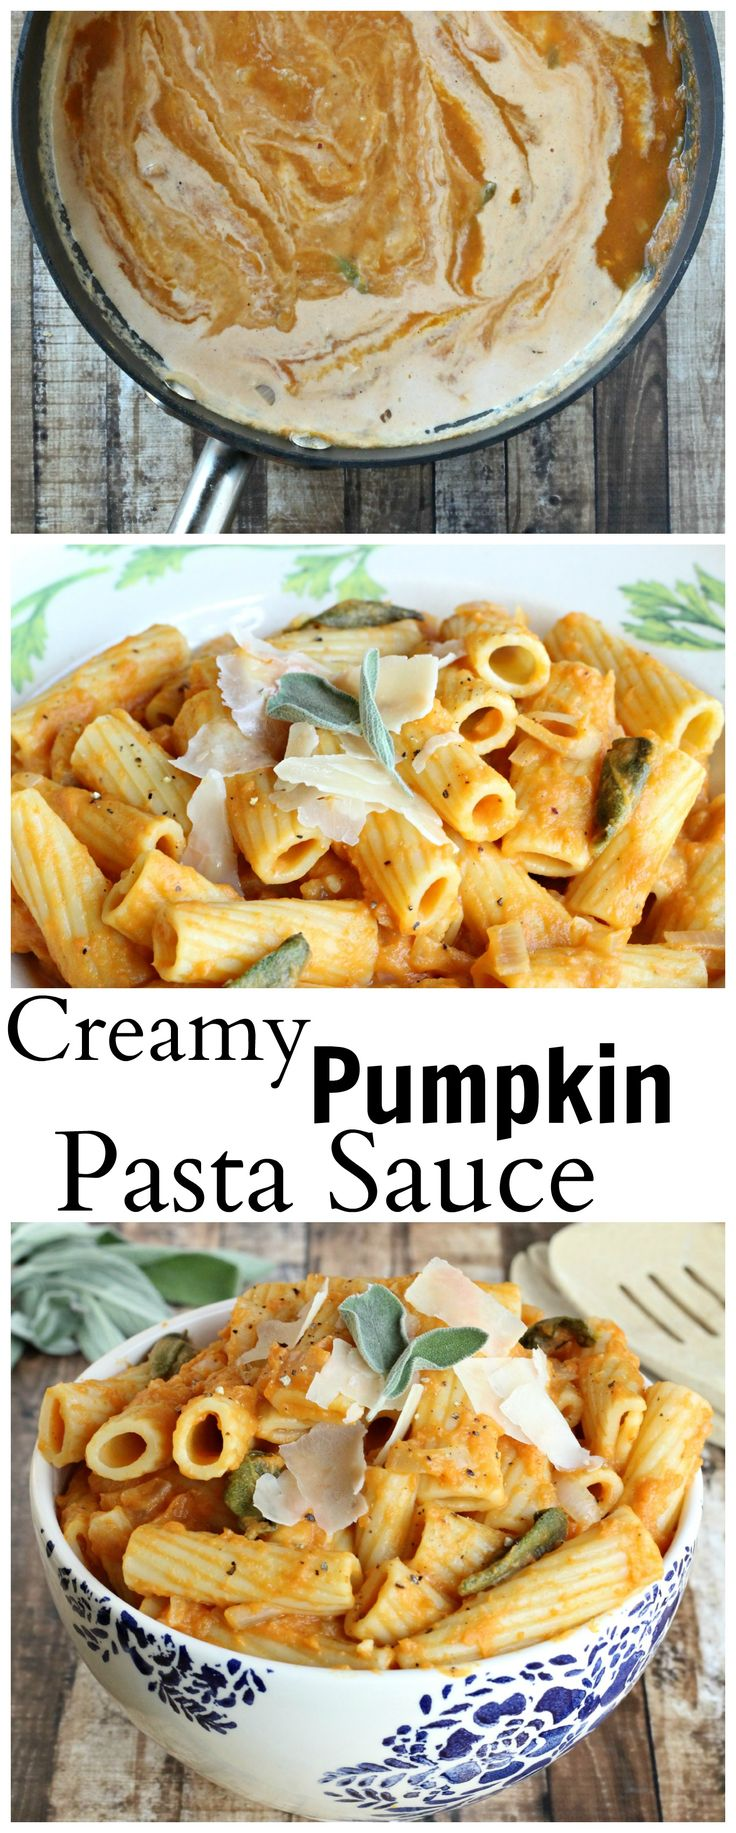 An easy pumpkin pasta sauce made with pumpkin puree, shallots, and sage. #SamsClubMag #ad